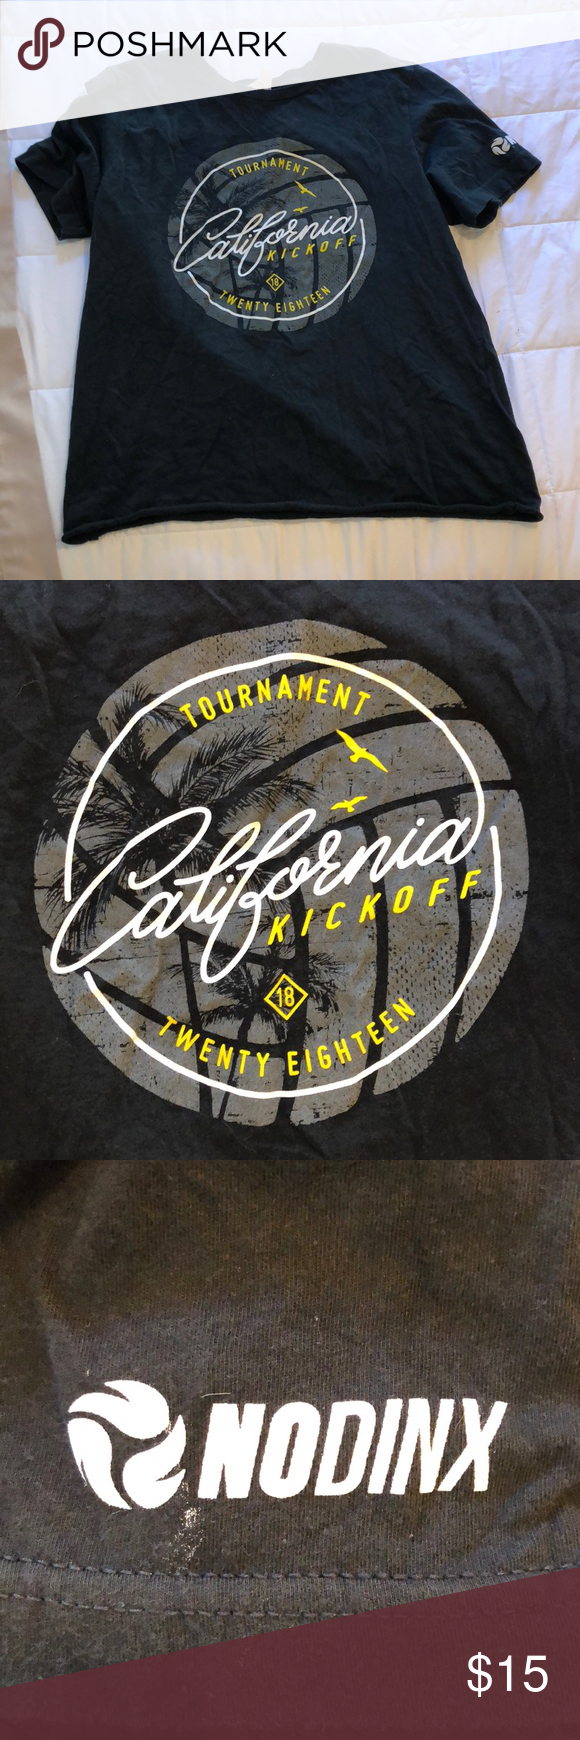 Nodinx Cal Kickoff Volleyball Shirt Nodinx California Kickoff Volleyball Tournament T Shirt Size Women S Medium But Volleyball Shirt Shirts T Shirts For Women